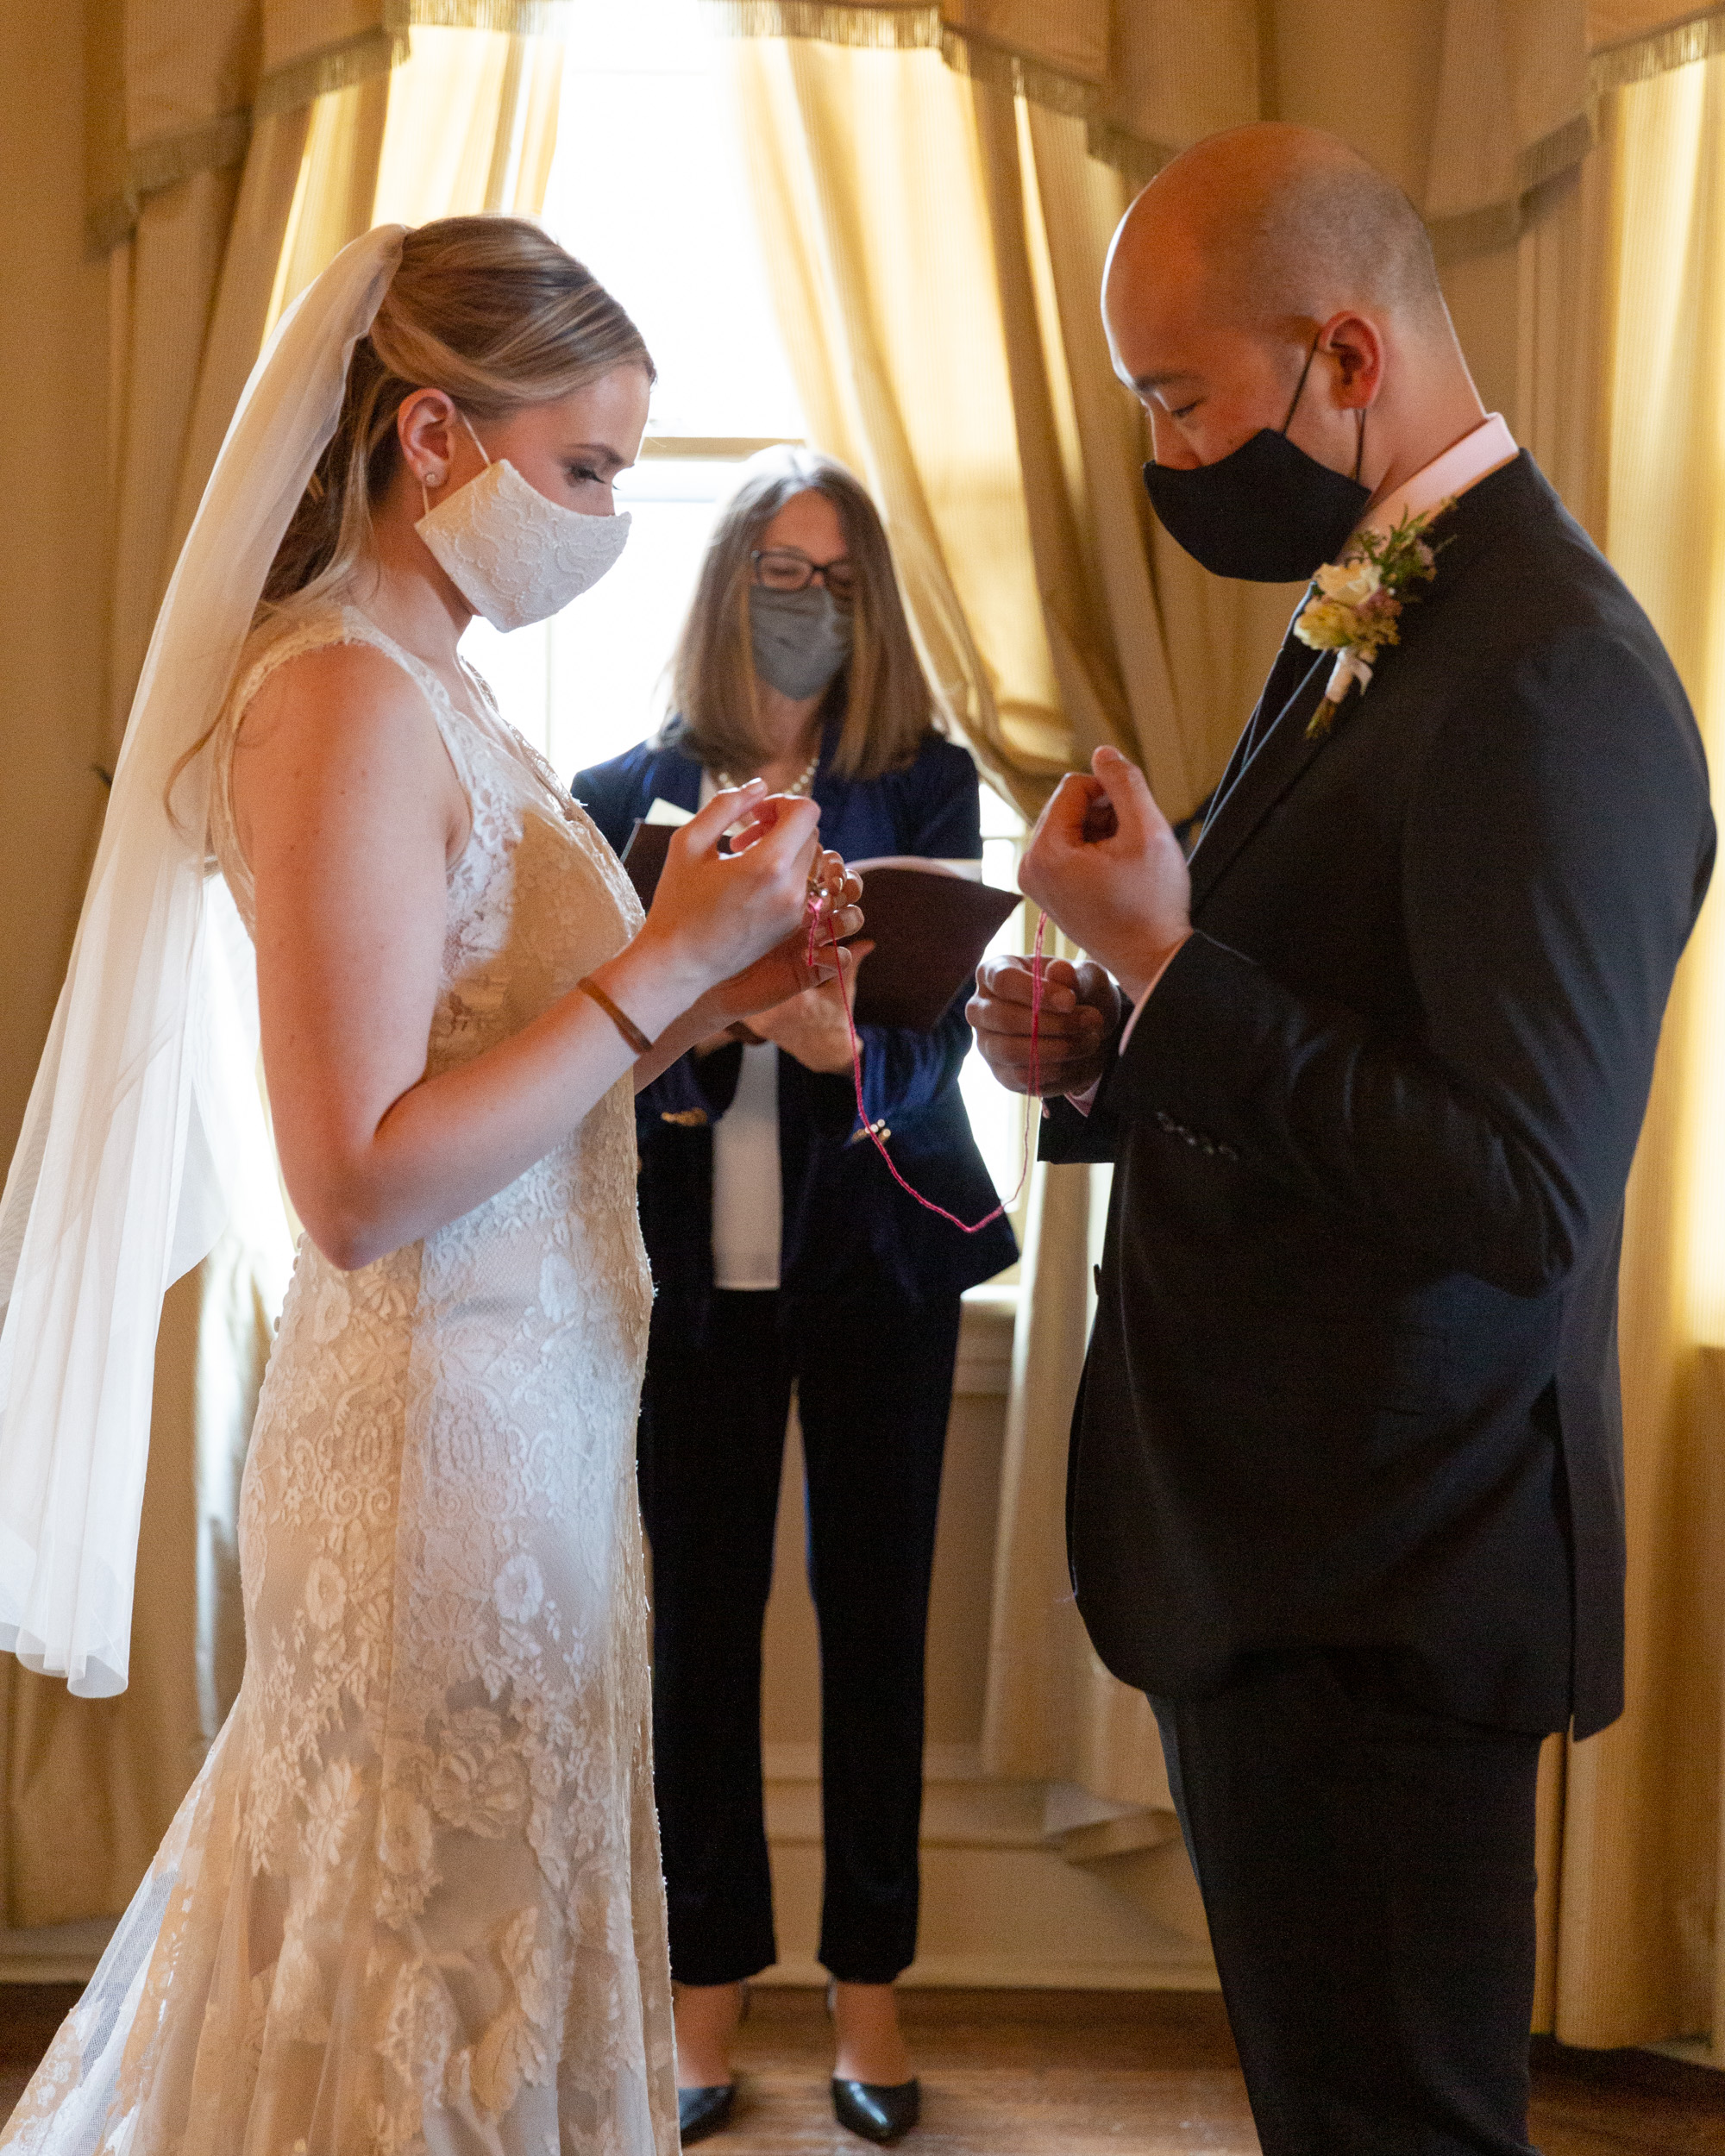 Elegant bride and groom say their vows in the Sayre Mansion in Bethlehem, PA by Laura Billingham Photography